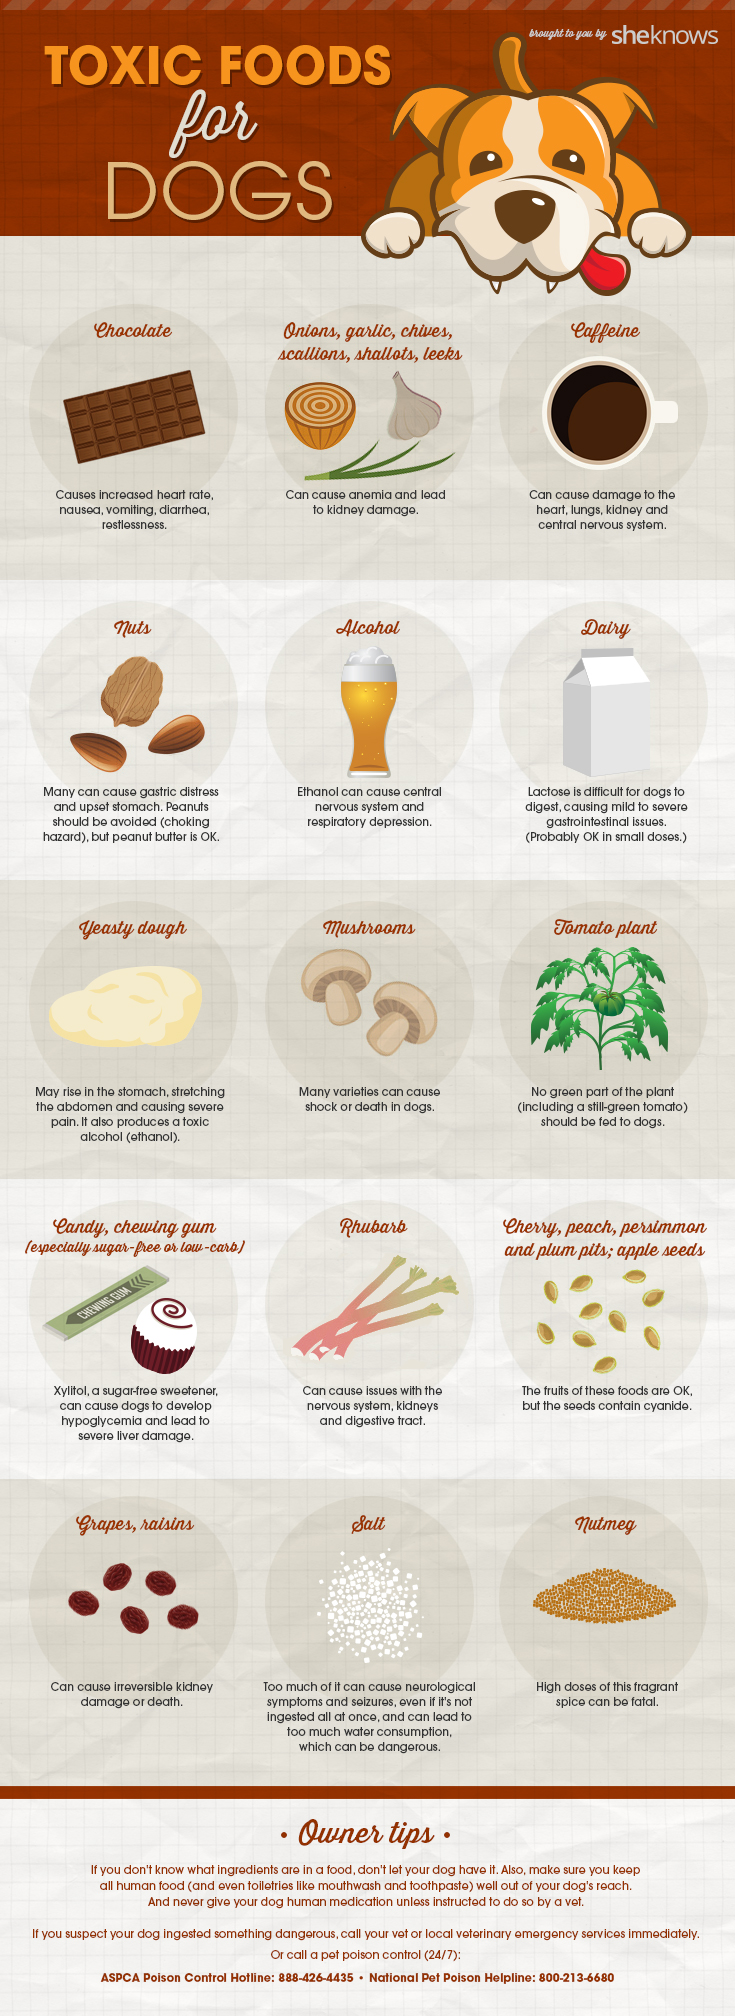 foods-toxic-to-dogs-infographic